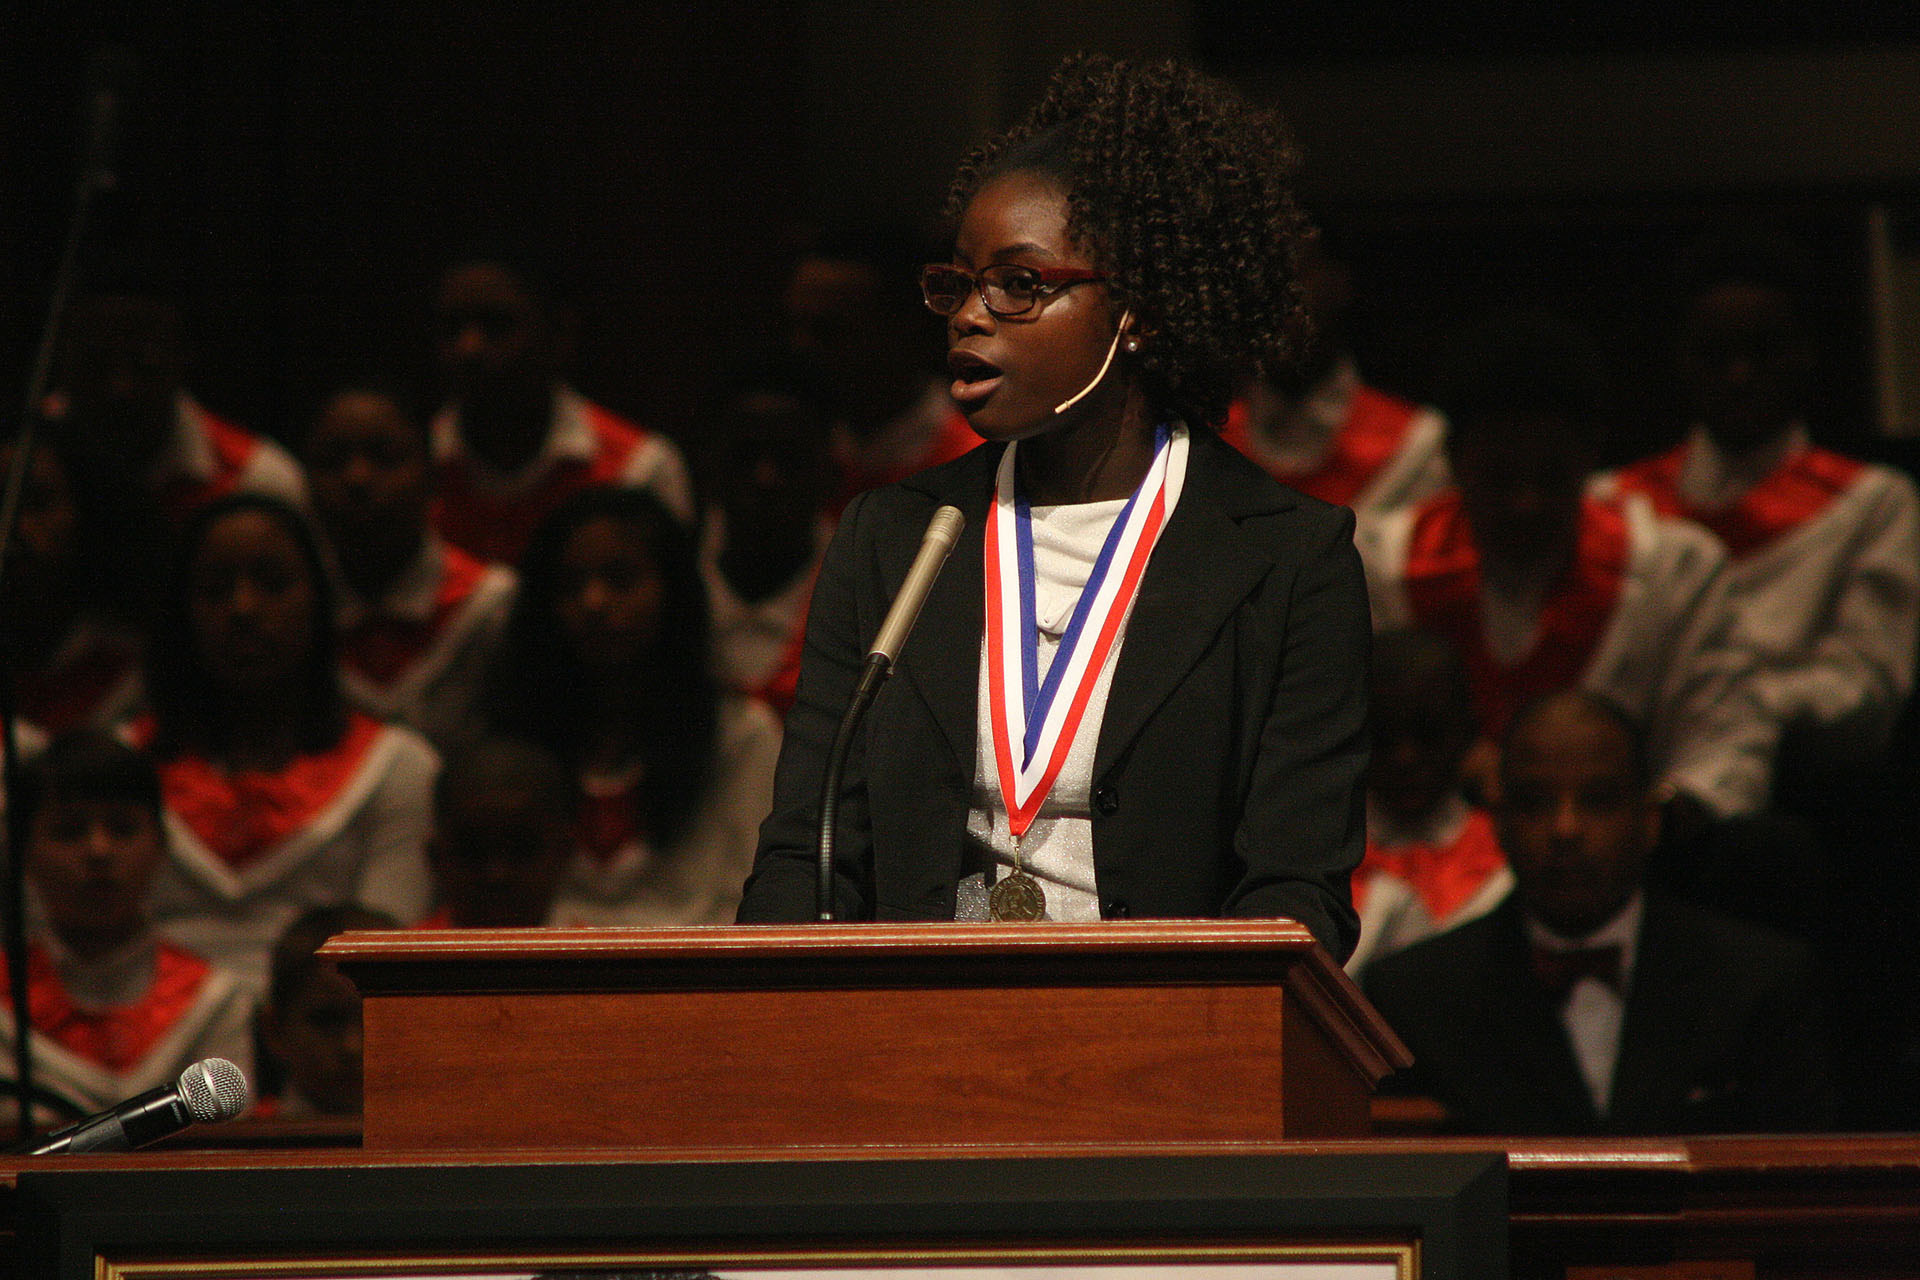 Oratorical competition taking place virtually